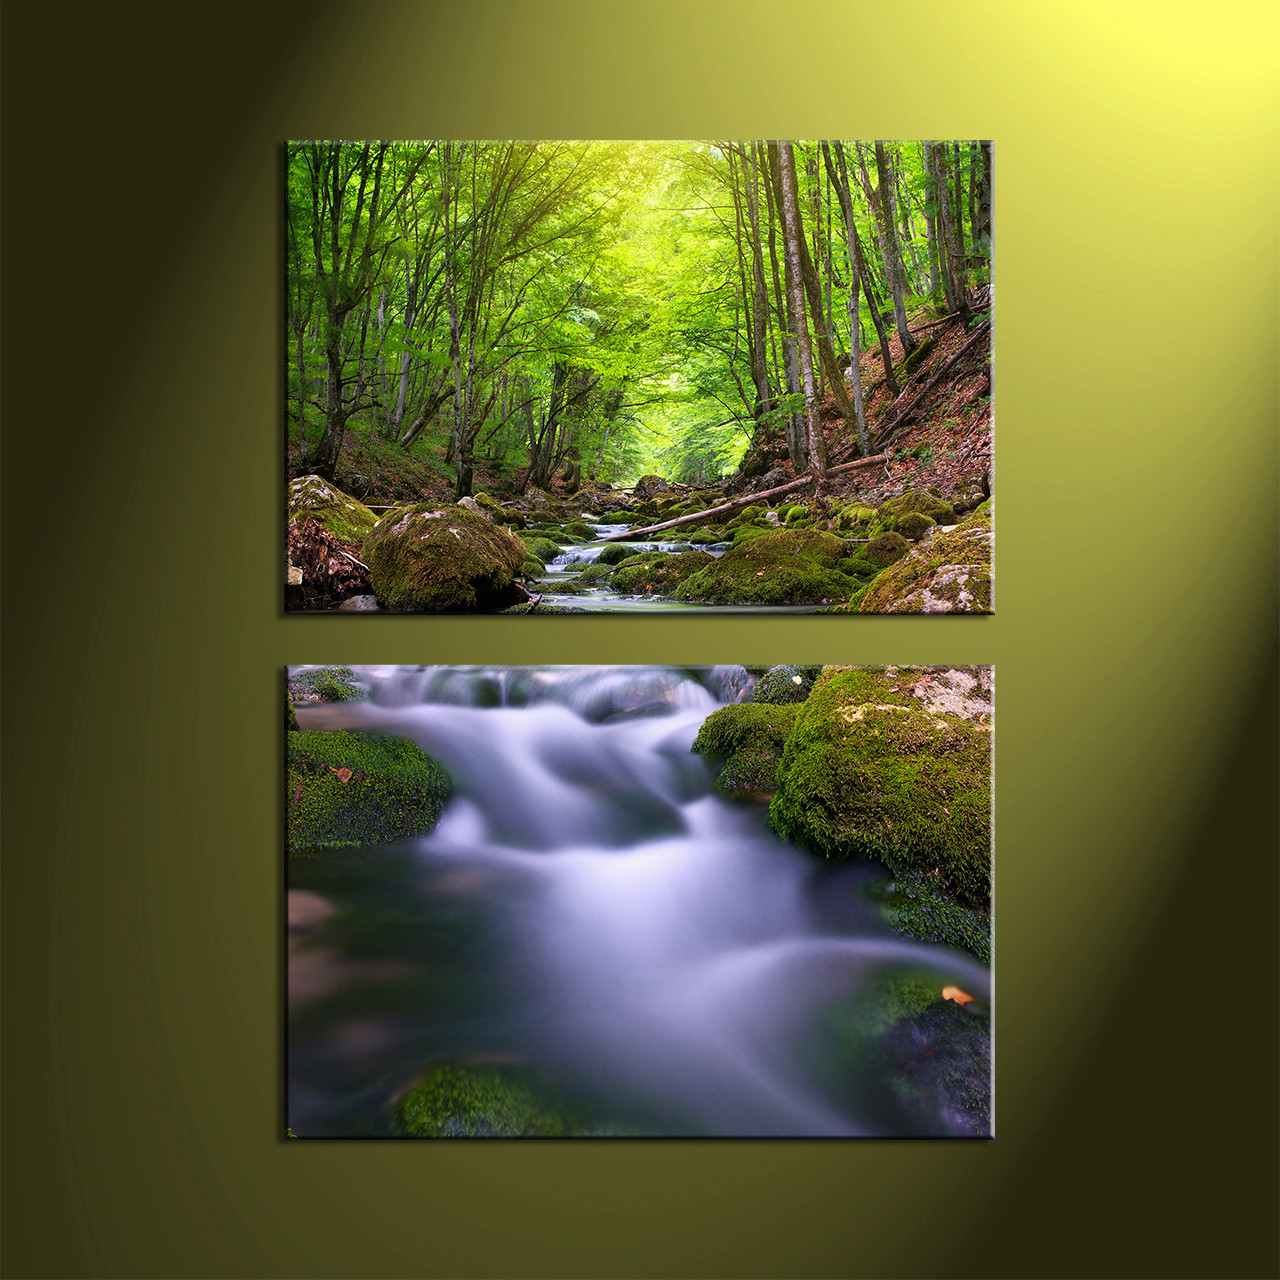 Waterfall Wall Art 2 piece green forest scenery canvas wall art